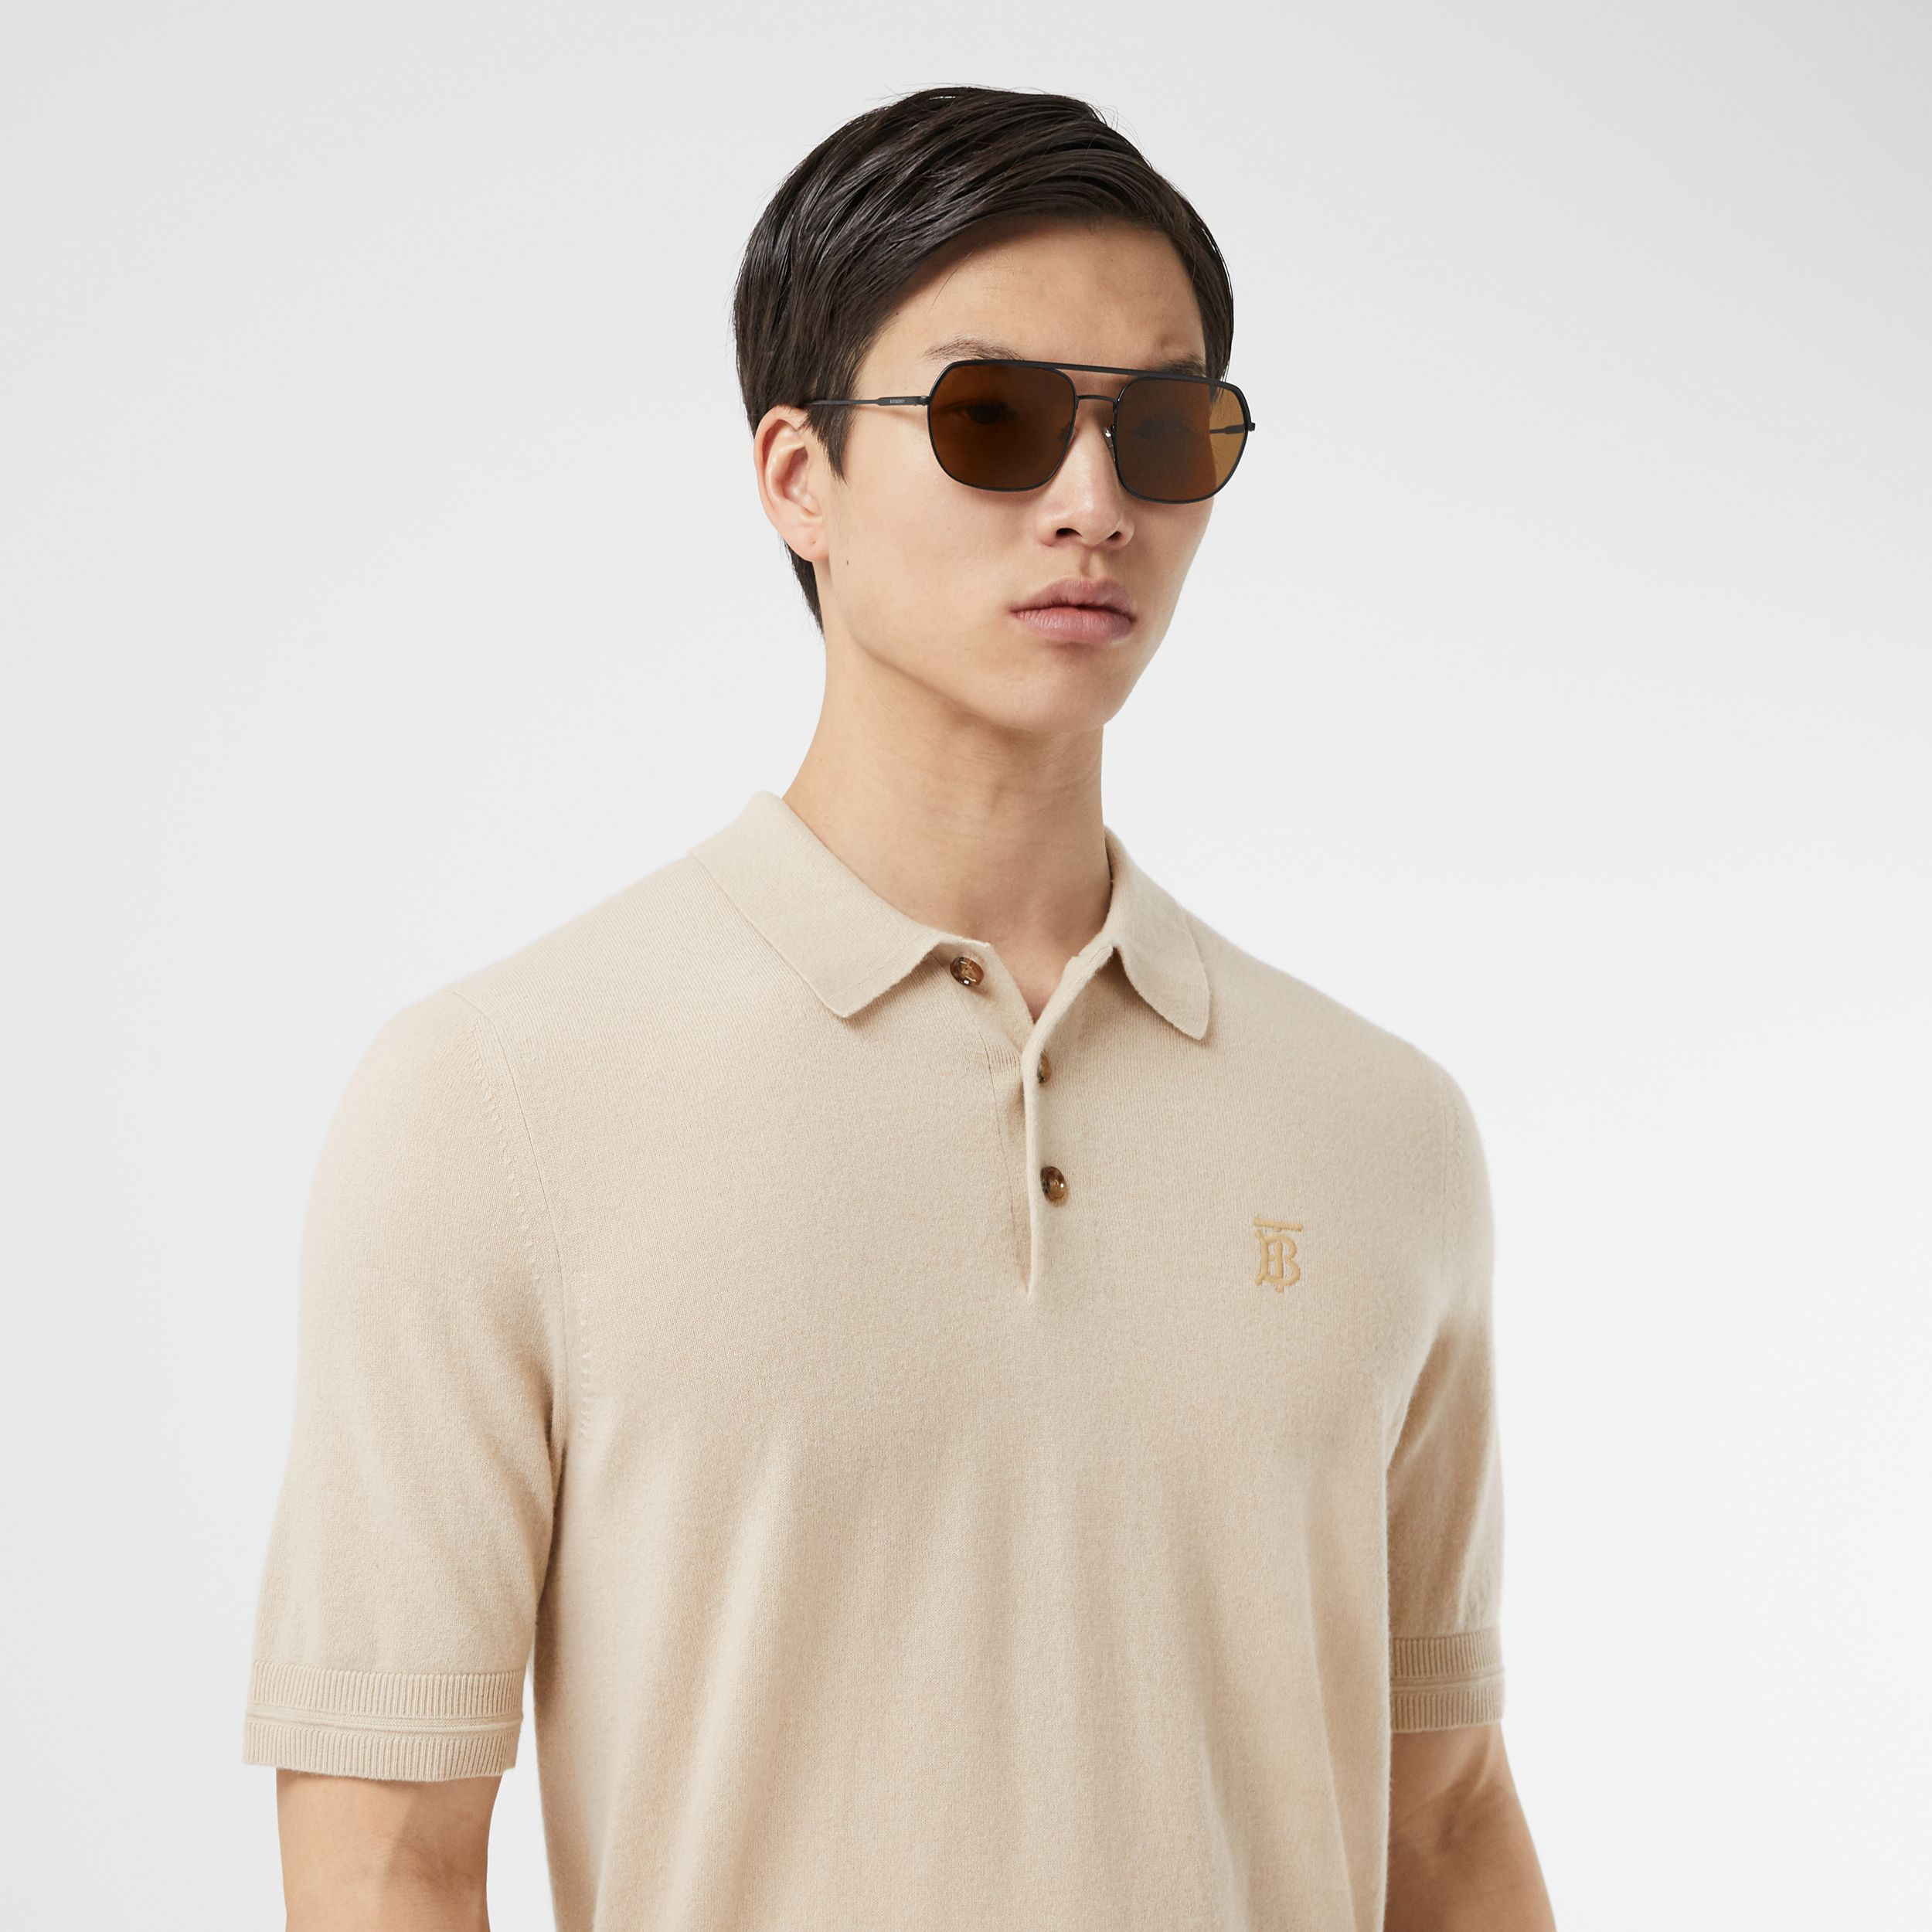 Monogram Motif Cashmere Polo Shirt in Soft Fawn - Men | Burberry United Kingdom - 2